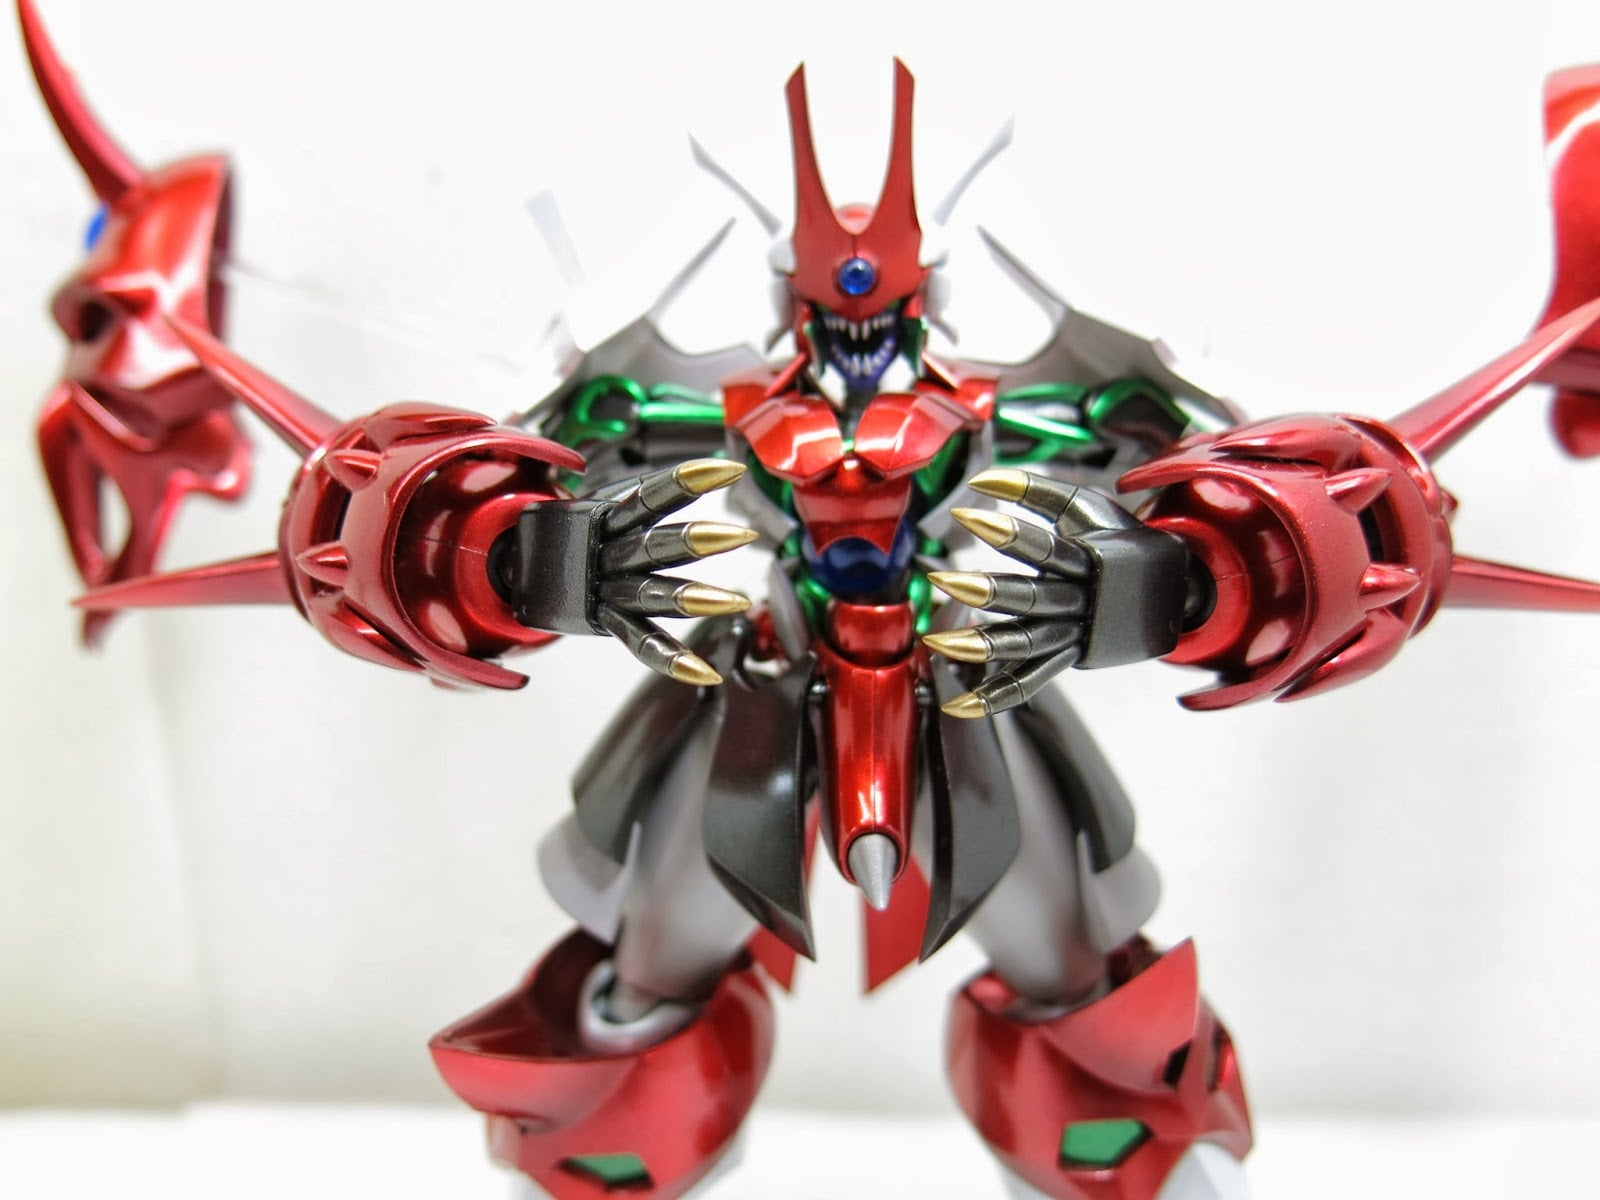 Toy Model Ghost Mask 18 約瑟夫模型:鬼面 SRG-S034~PERSON-LICHKEIT 超級機器人大戰 OG